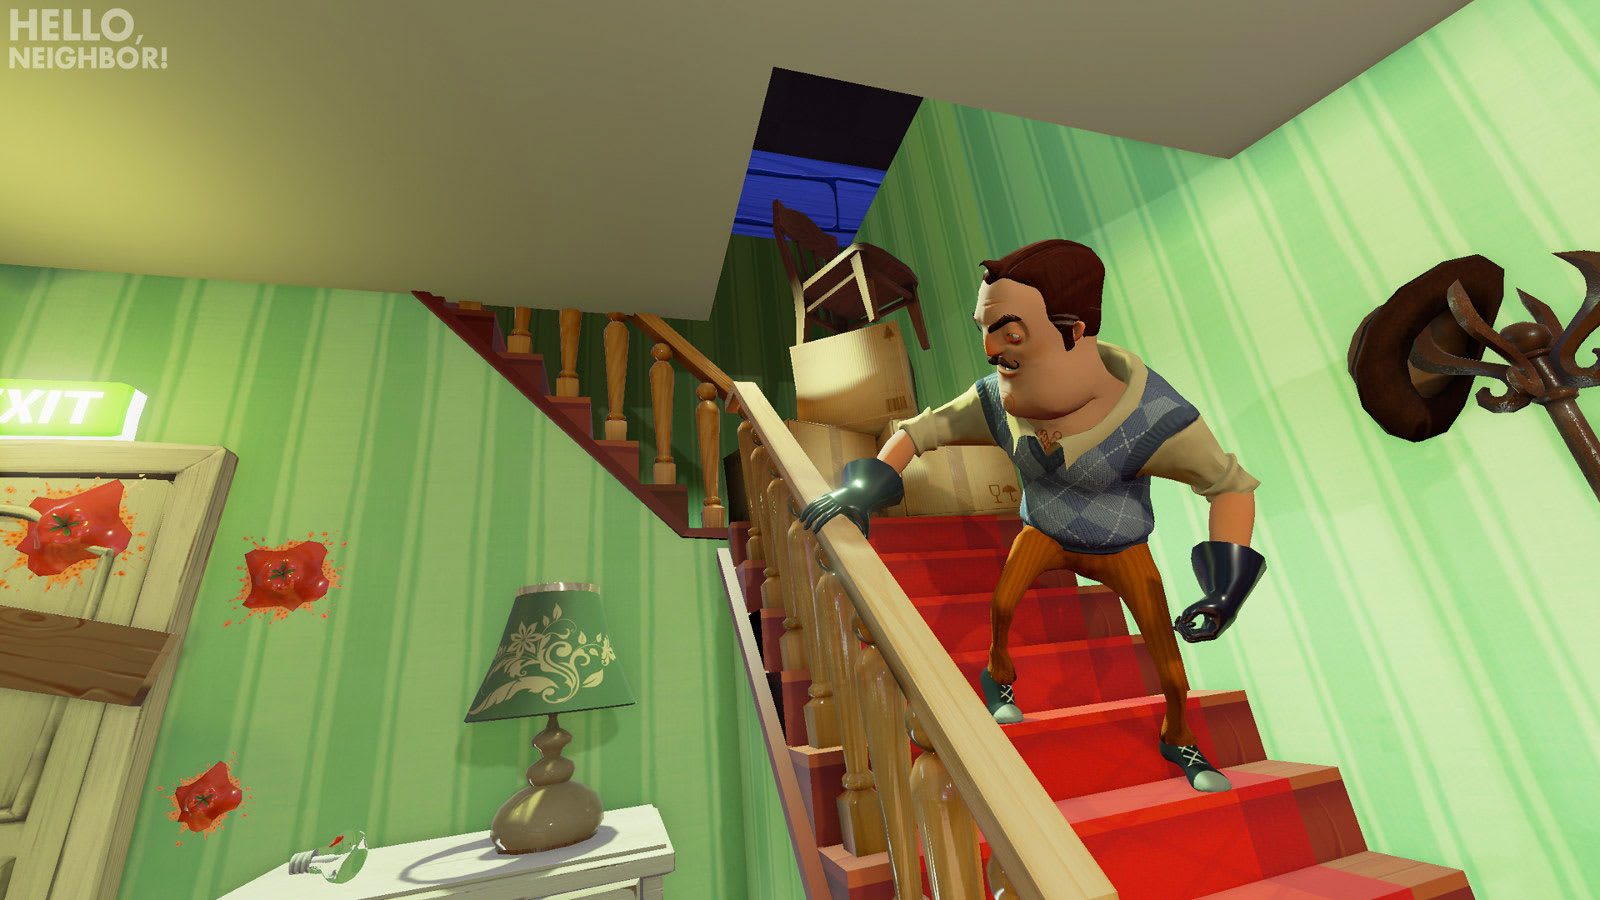 Horror Game Hello Neighbor Is Heading To Ps4 And Switch